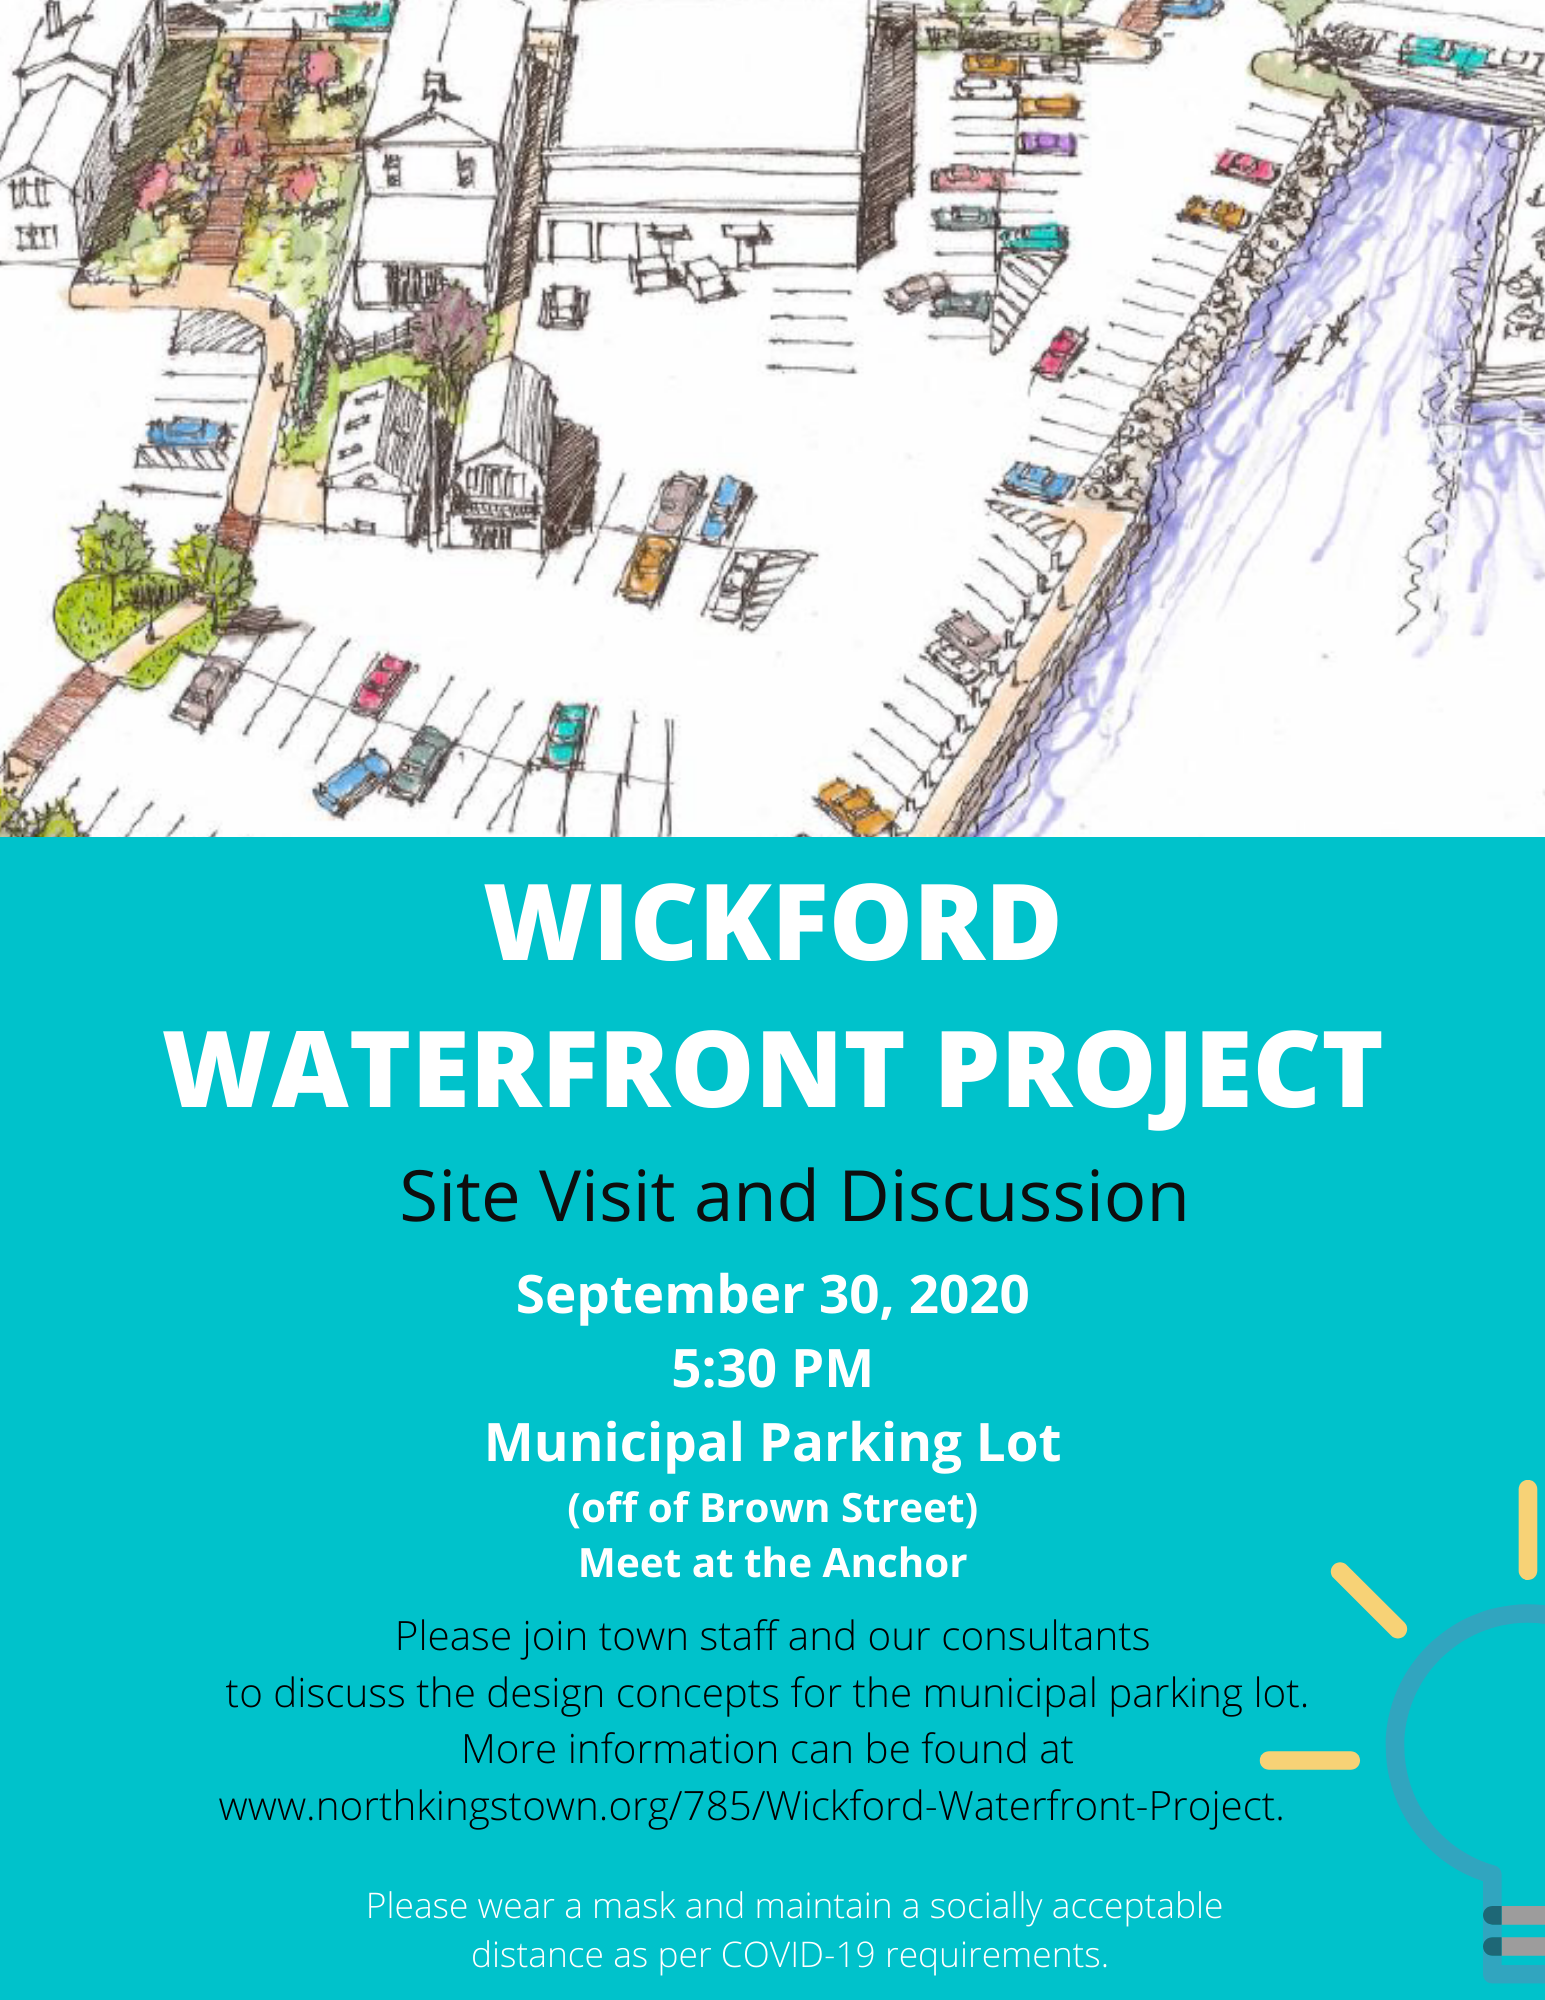 WICKFORD WATERFRONT PROJECT-site visit flyer